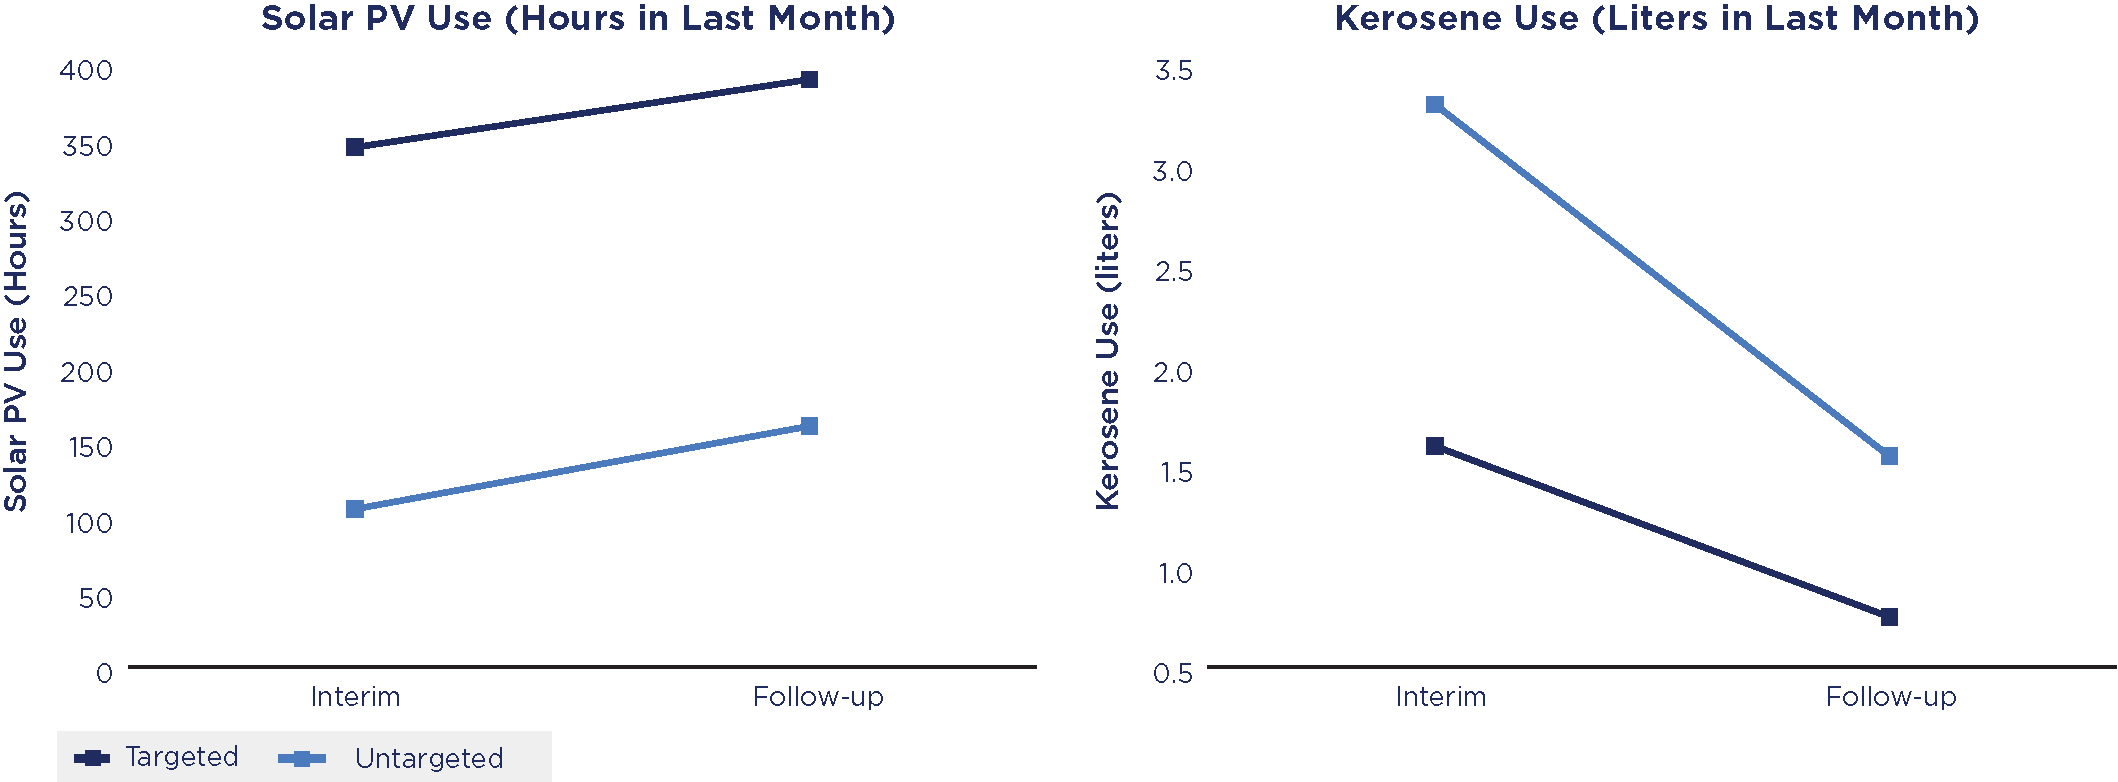 Chart showing solar use PV compared to Kerosene Use in last month